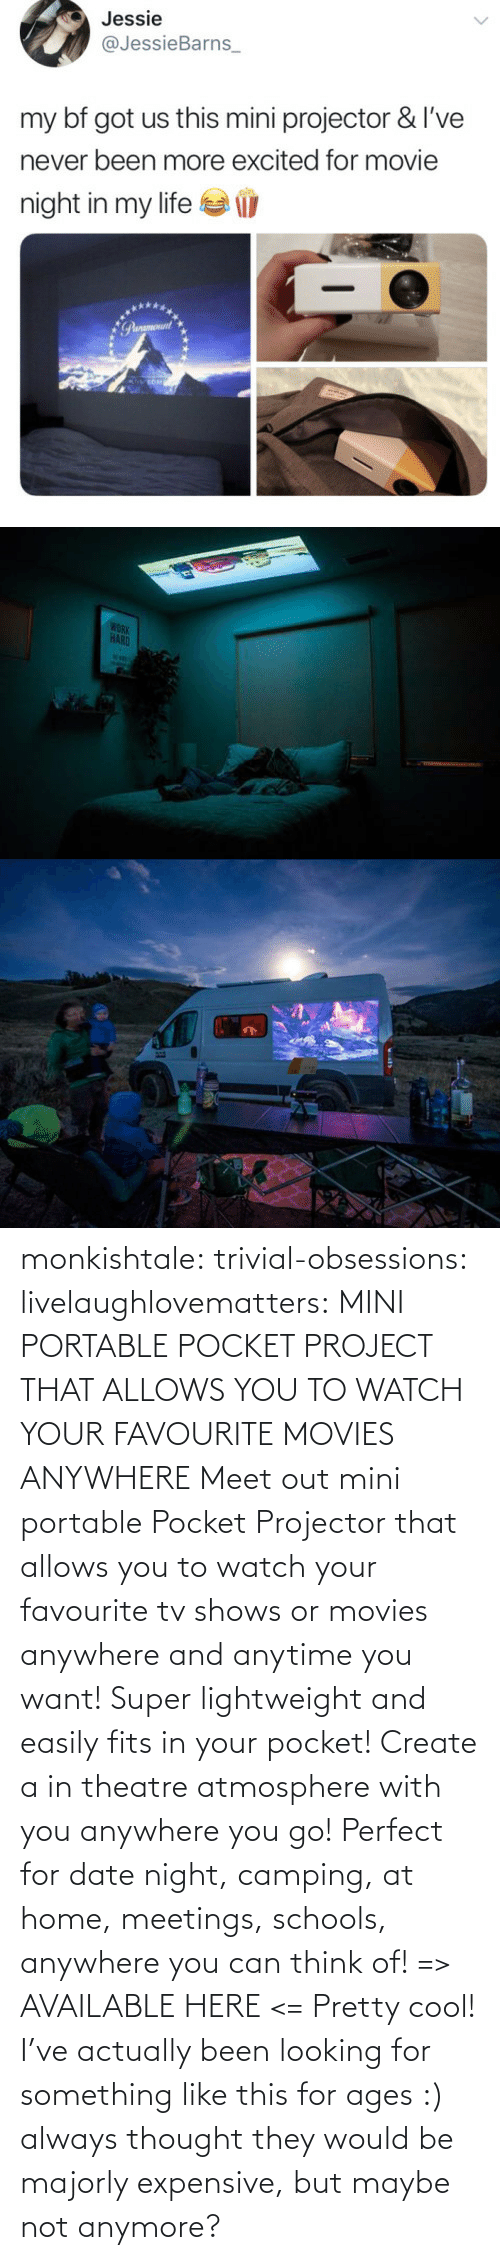 You Go: monkishtale: trivial-obsessions:   livelaughlovematters:   MINI PORTABLE POCKET PROJECT THAT ALLOWS YOU TO WATCH YOUR FAVOURITE MOVIES ANYWHERE Meet out mini portable Pocket Projector that allows you to watch your favourite tv shows or movies anywhere and anytime you want! Super lightweight and easily fits in your pocket! Create a in theatre atmosphere with you anywhere you go! Perfect for date night, camping, at home, meetings, schools, anywhere you can think of! => AVAILABLE HERE <=    Pretty cool!    I've actually been looking for something like this for ages :) always thought they would be majorly expensive, but maybe not anymore?